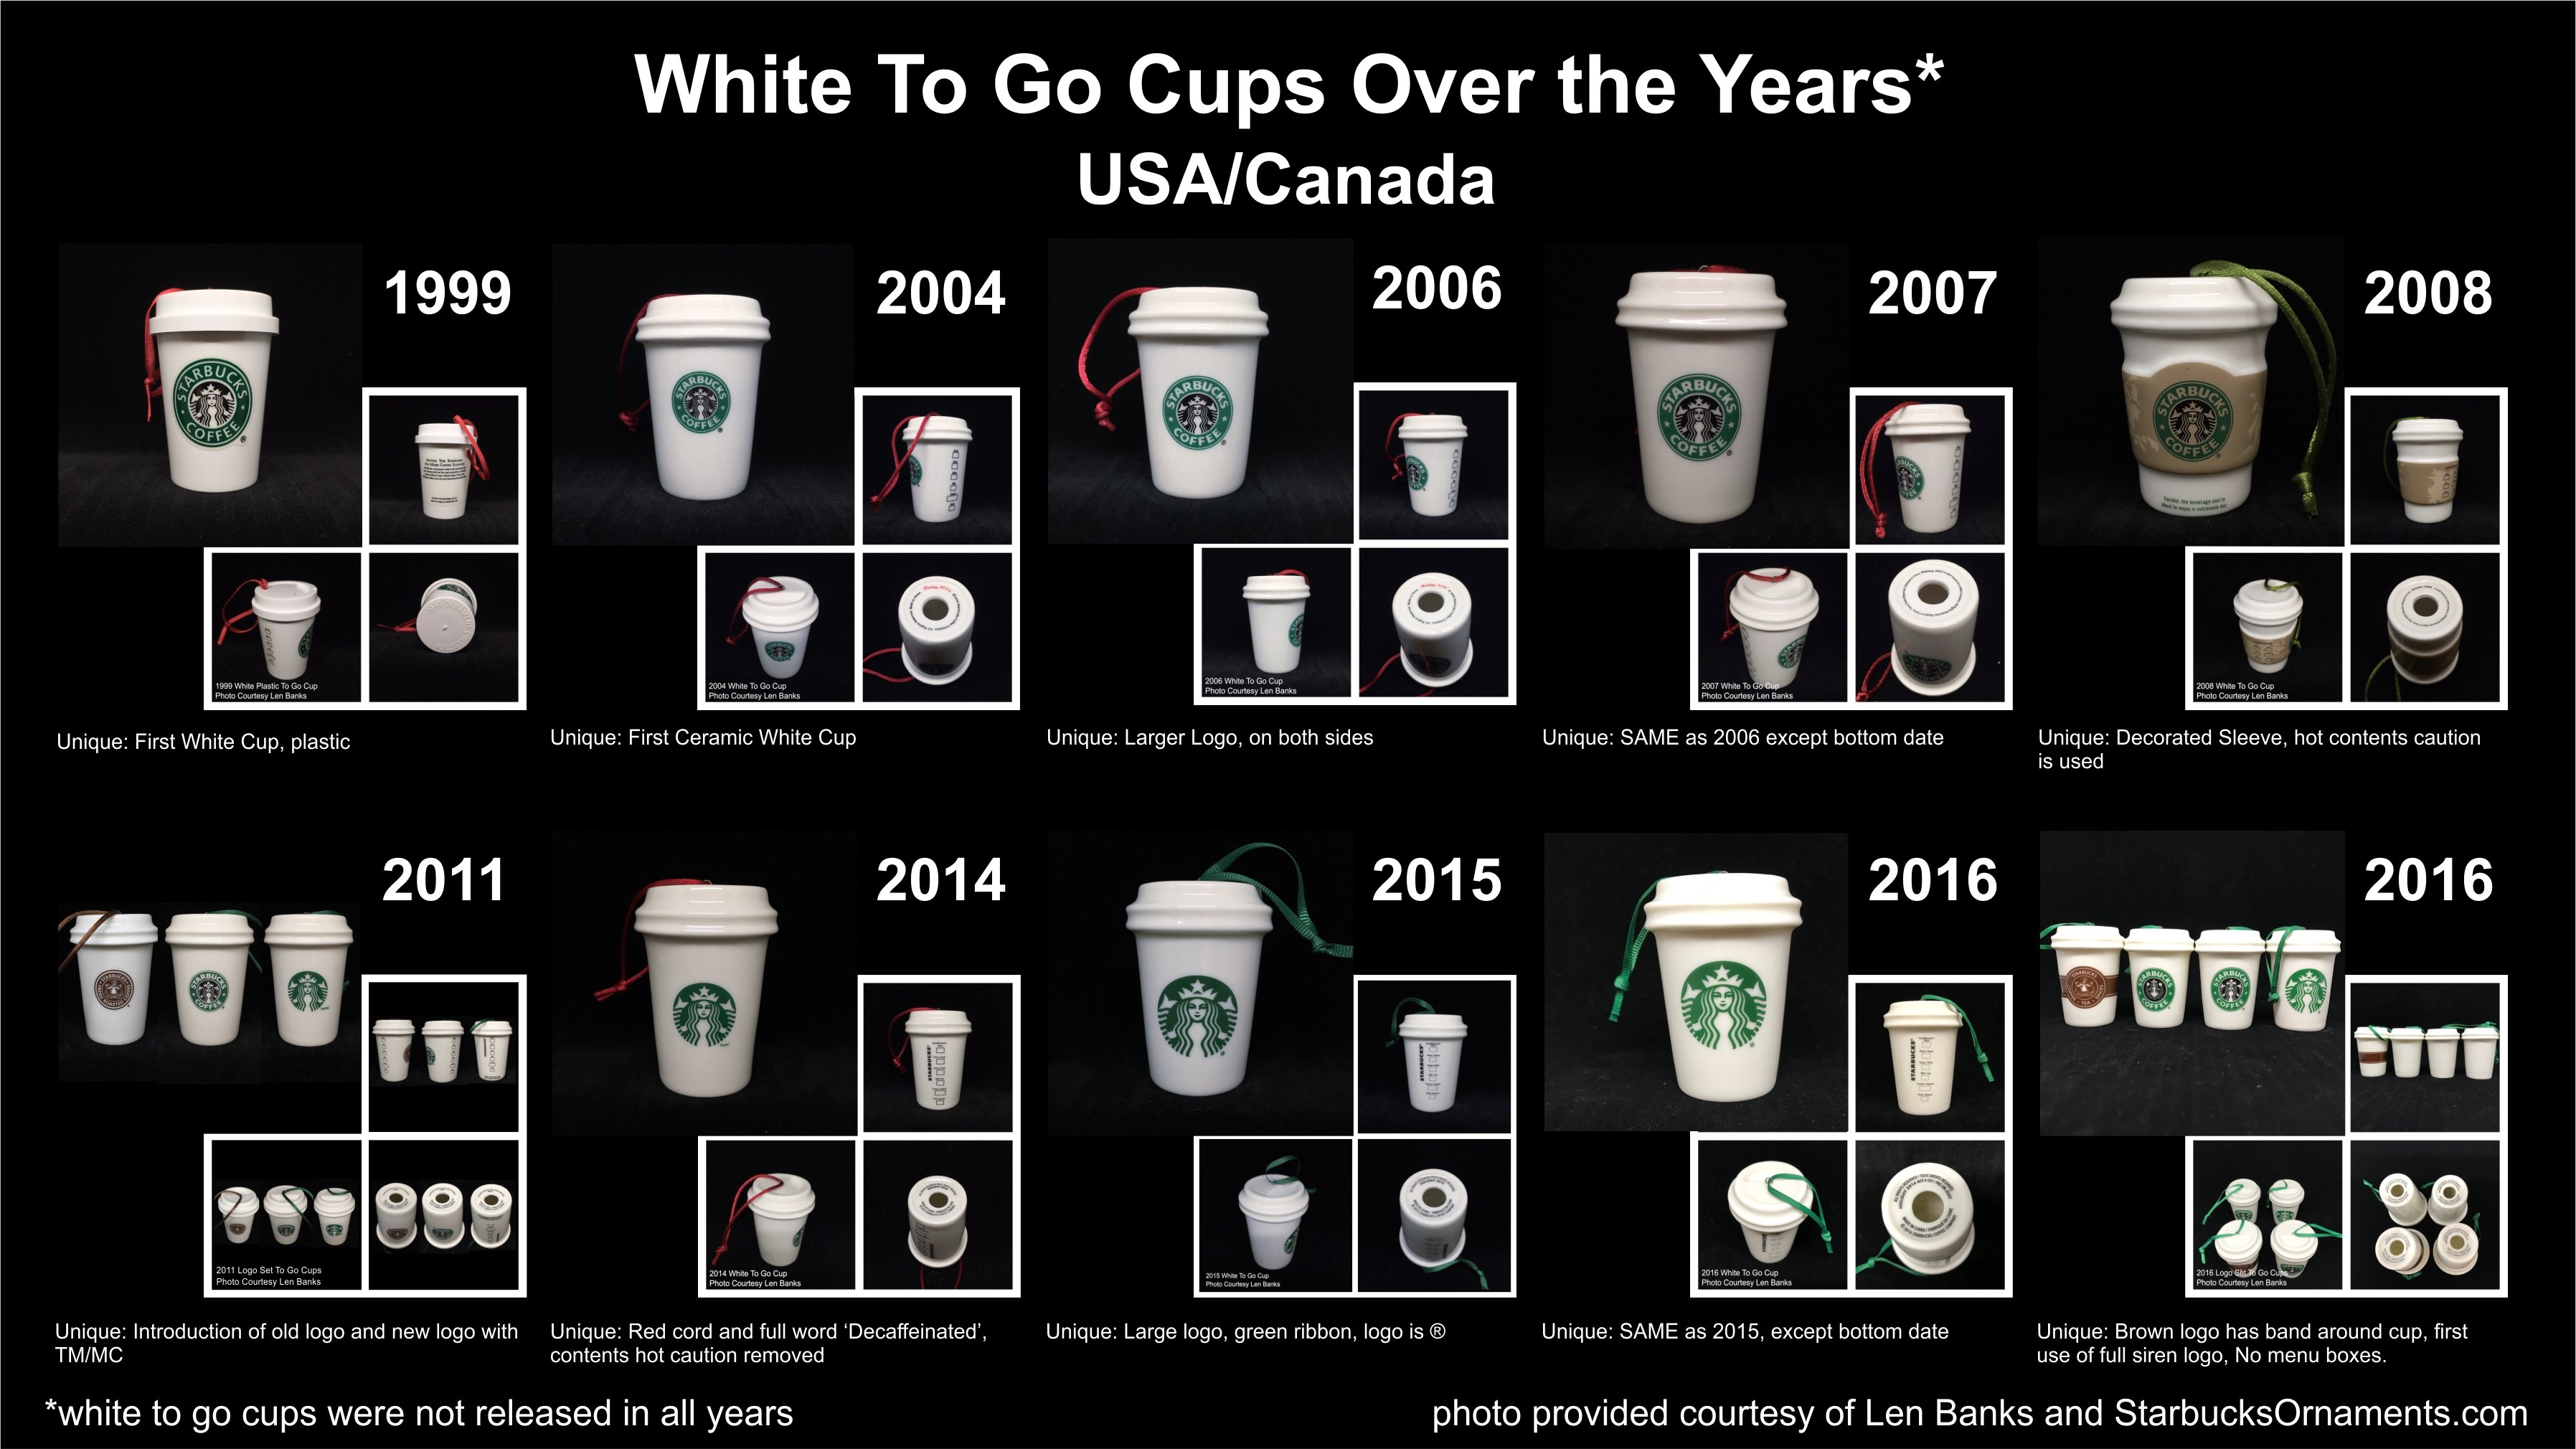 Starbucks Ornaments White Cups